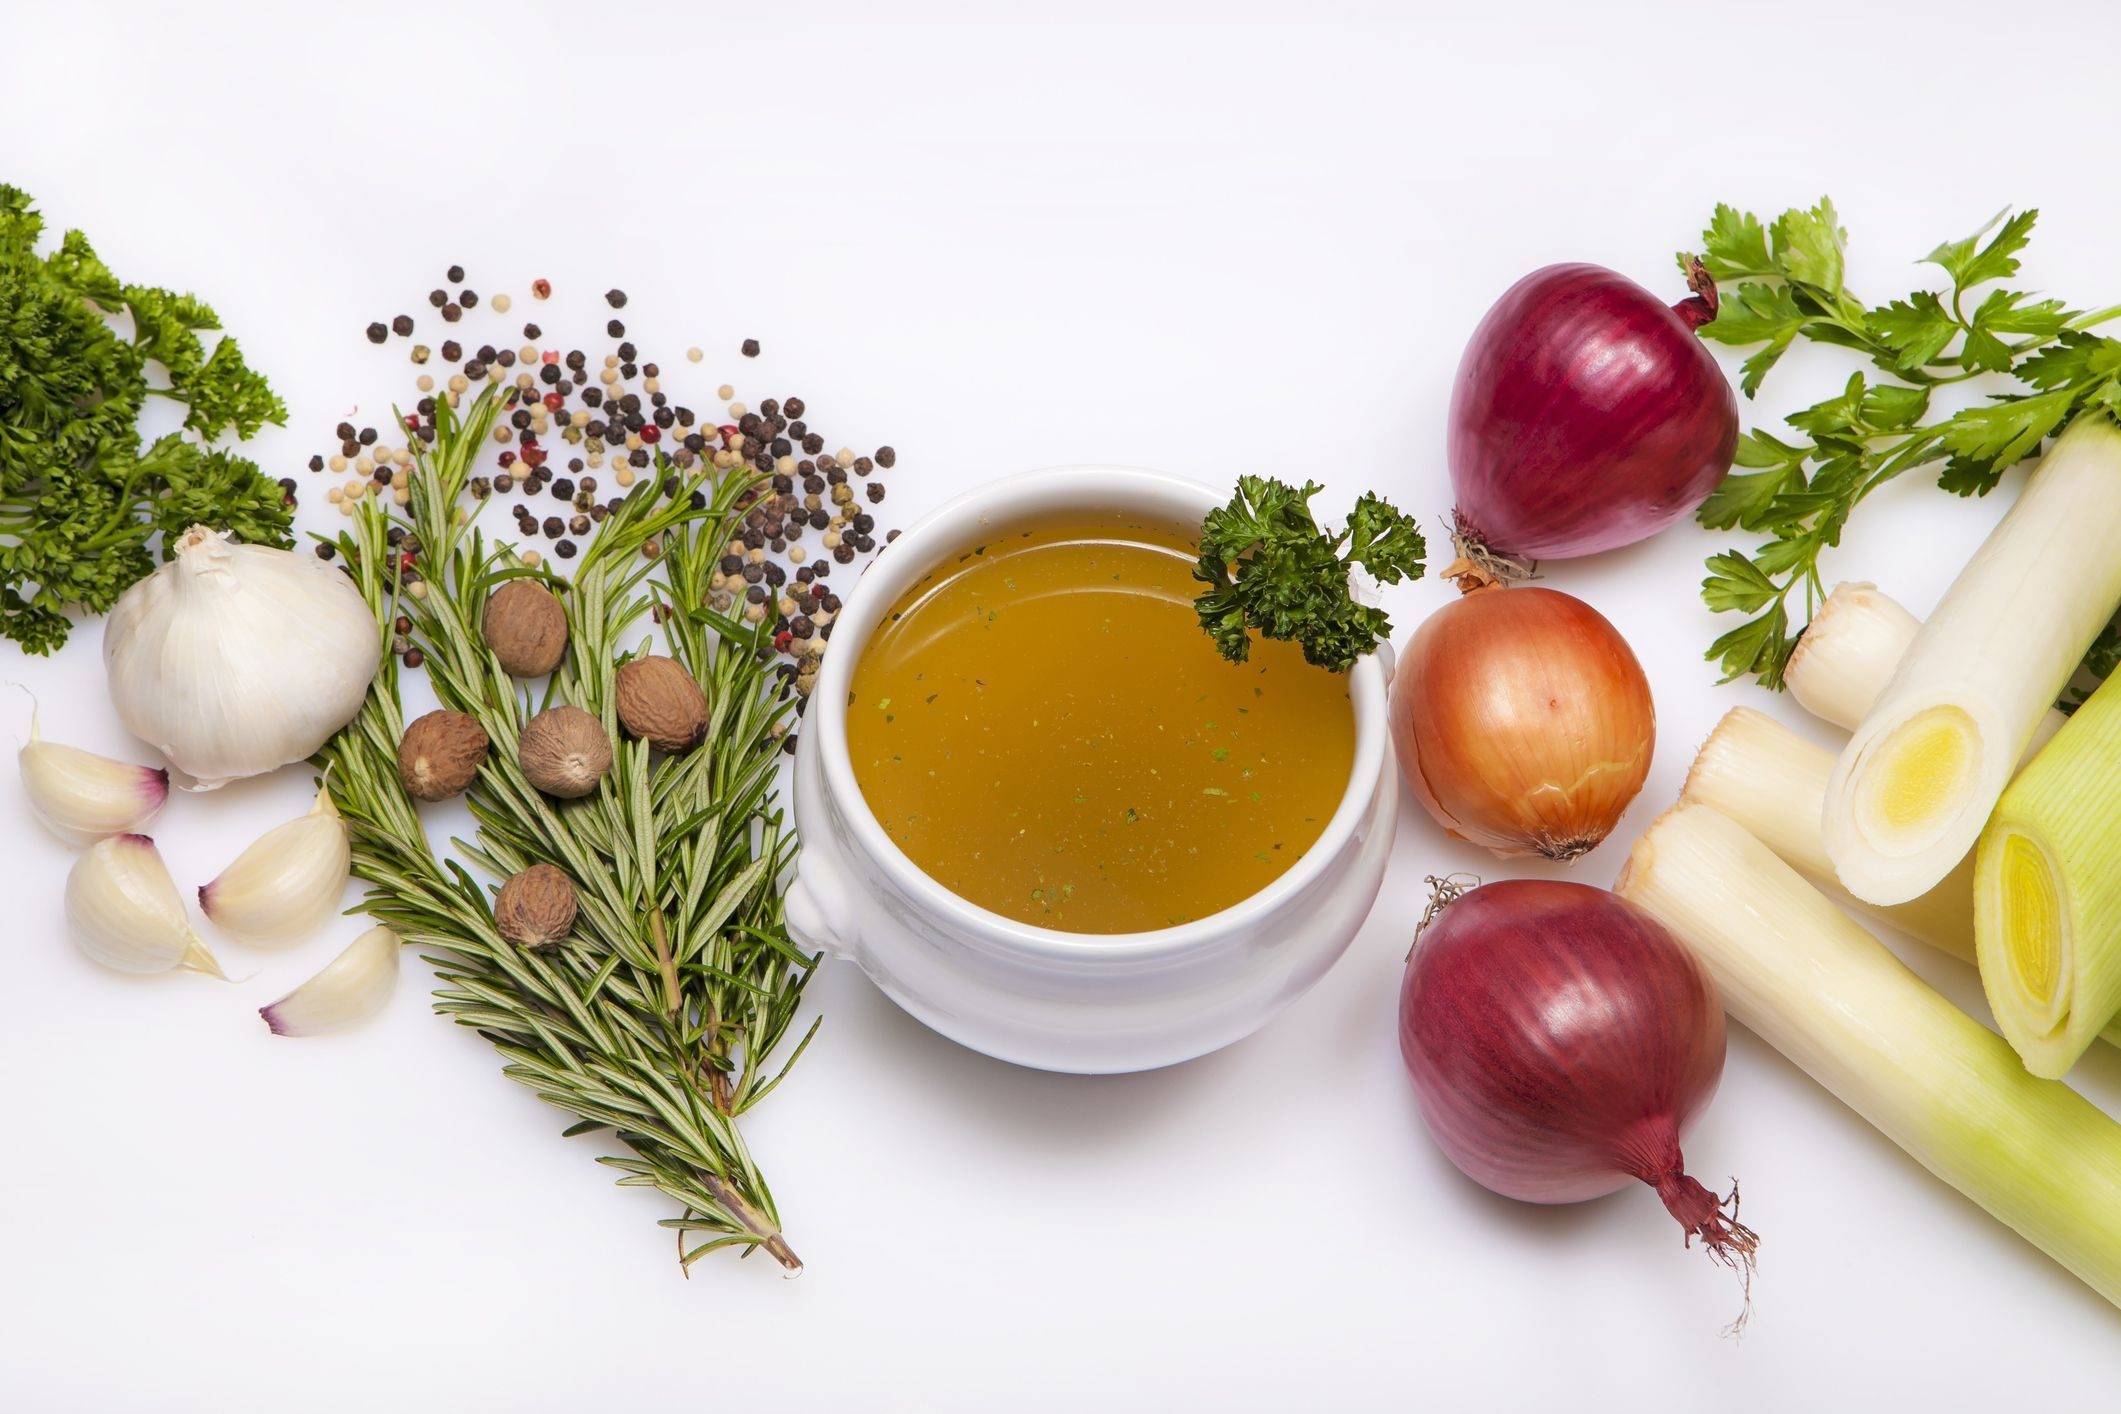 You can use this easy homemade vegetable broth in recipes calling for broth or stock of any kind, including soups, sauces and gravies. Great for all dishes vegetarian and vegan and includes a gluten-free option.